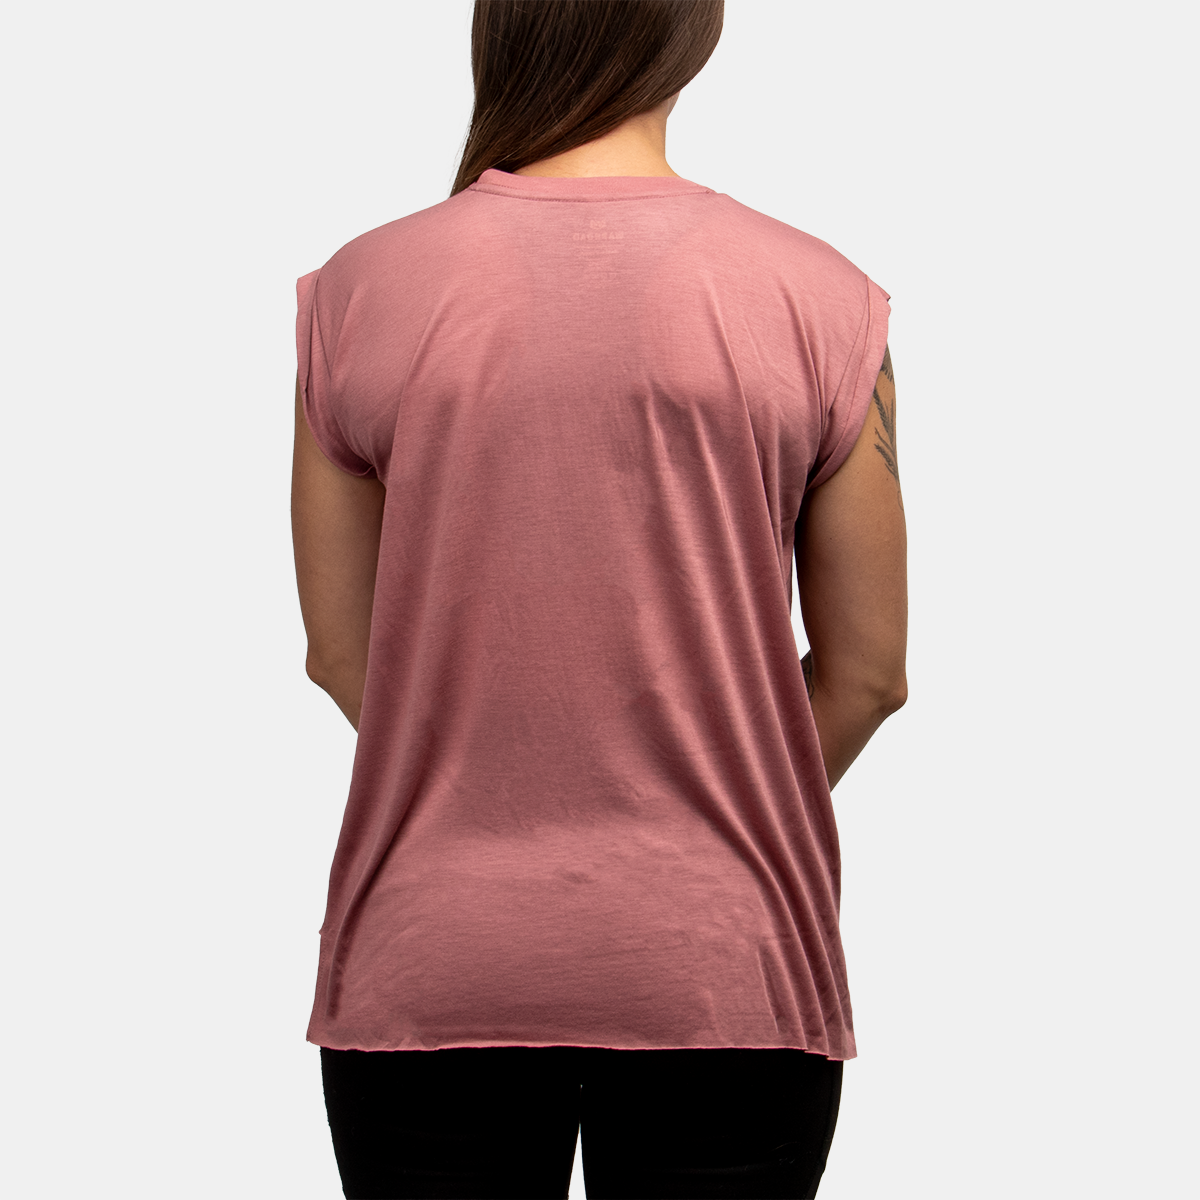 Warroad Women's Cuff Tee - Mauve